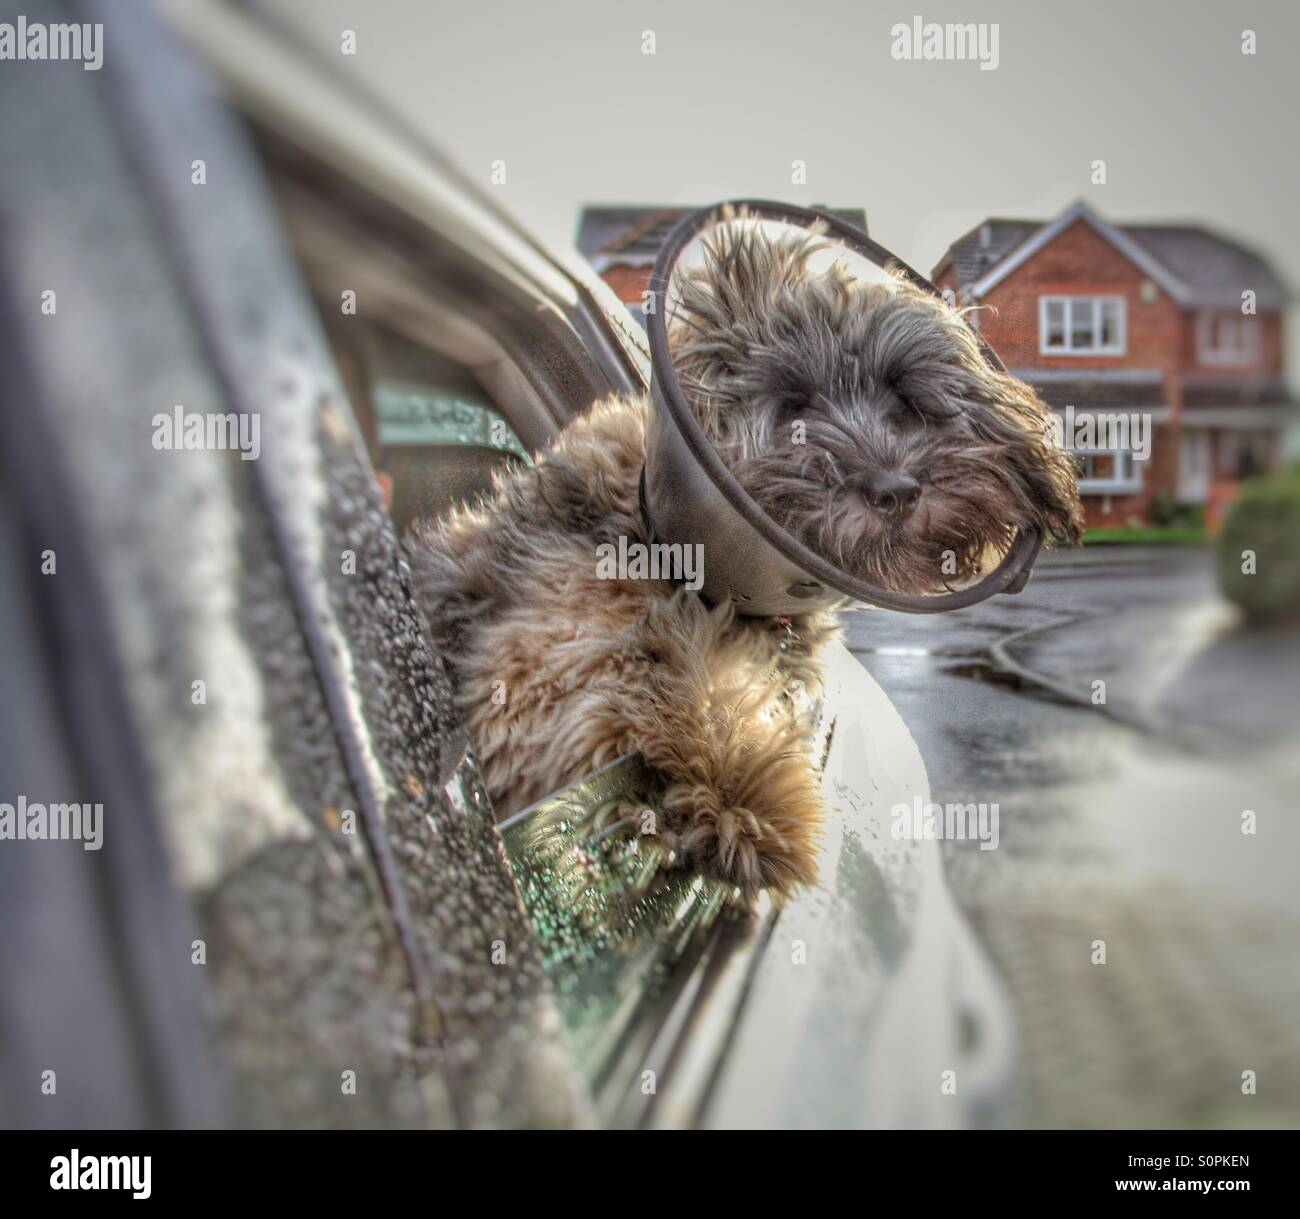 A poorly dog with a protective collar on getting some fresh air from the side window of a moving car. - Stock Image